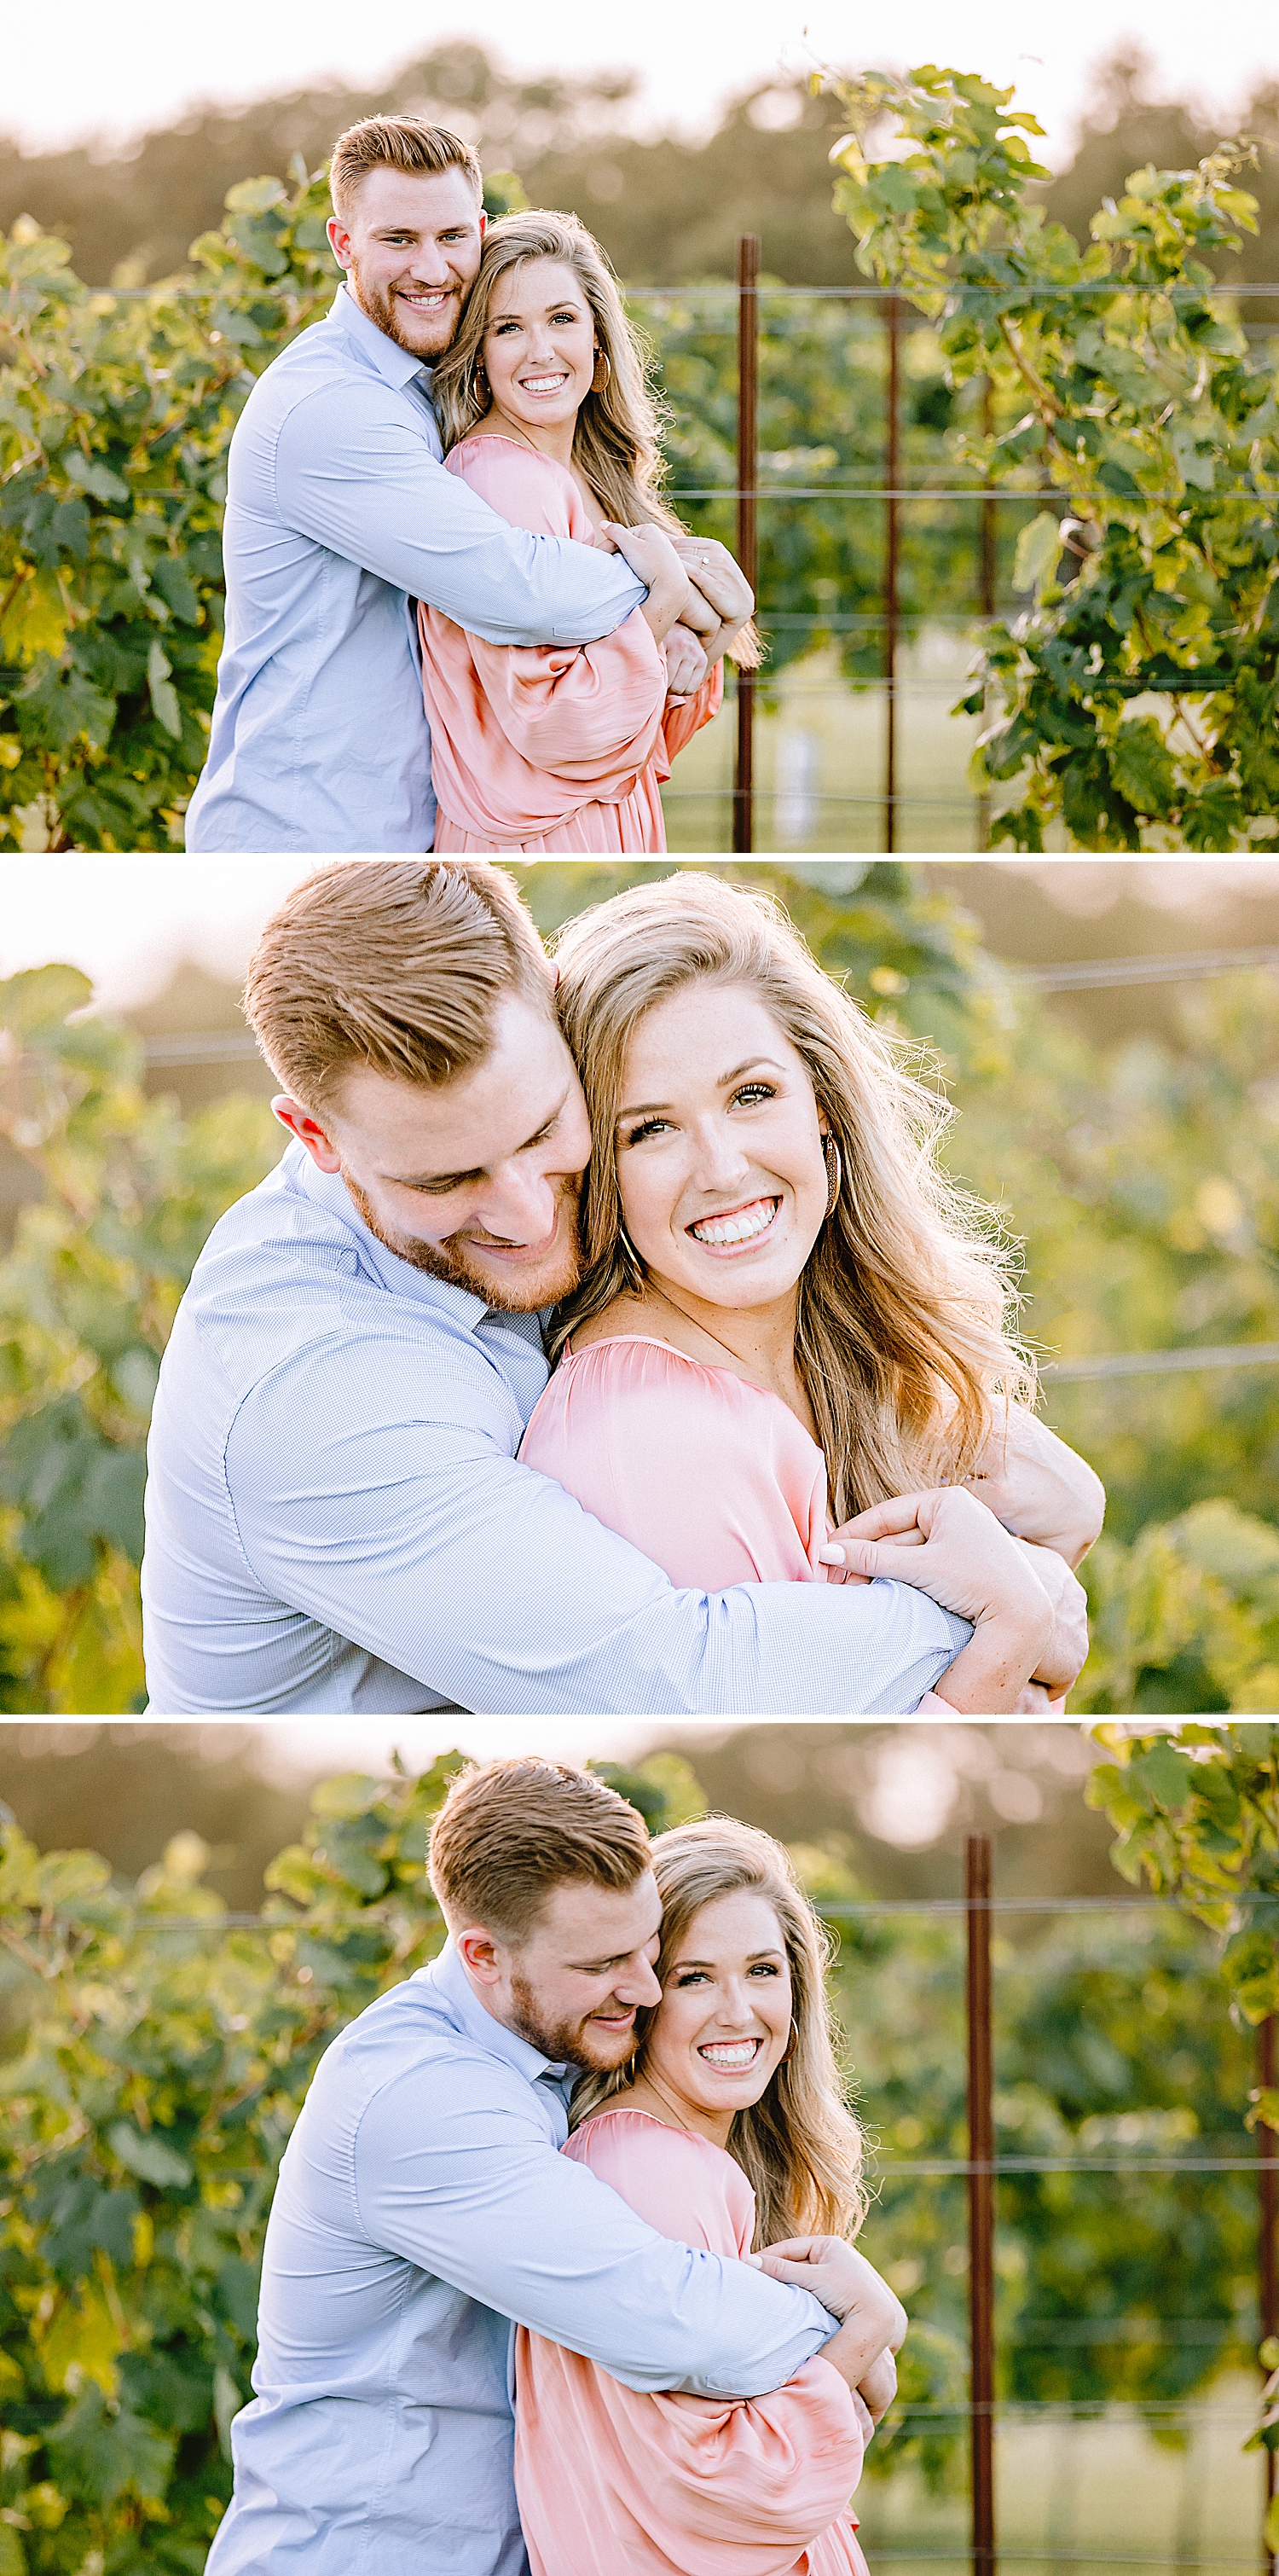 Carly-Barton-Photography-Engagement-Photos-College-Station-Texas-The-Weinberg-at-Wixon-Valley_0006.jpg